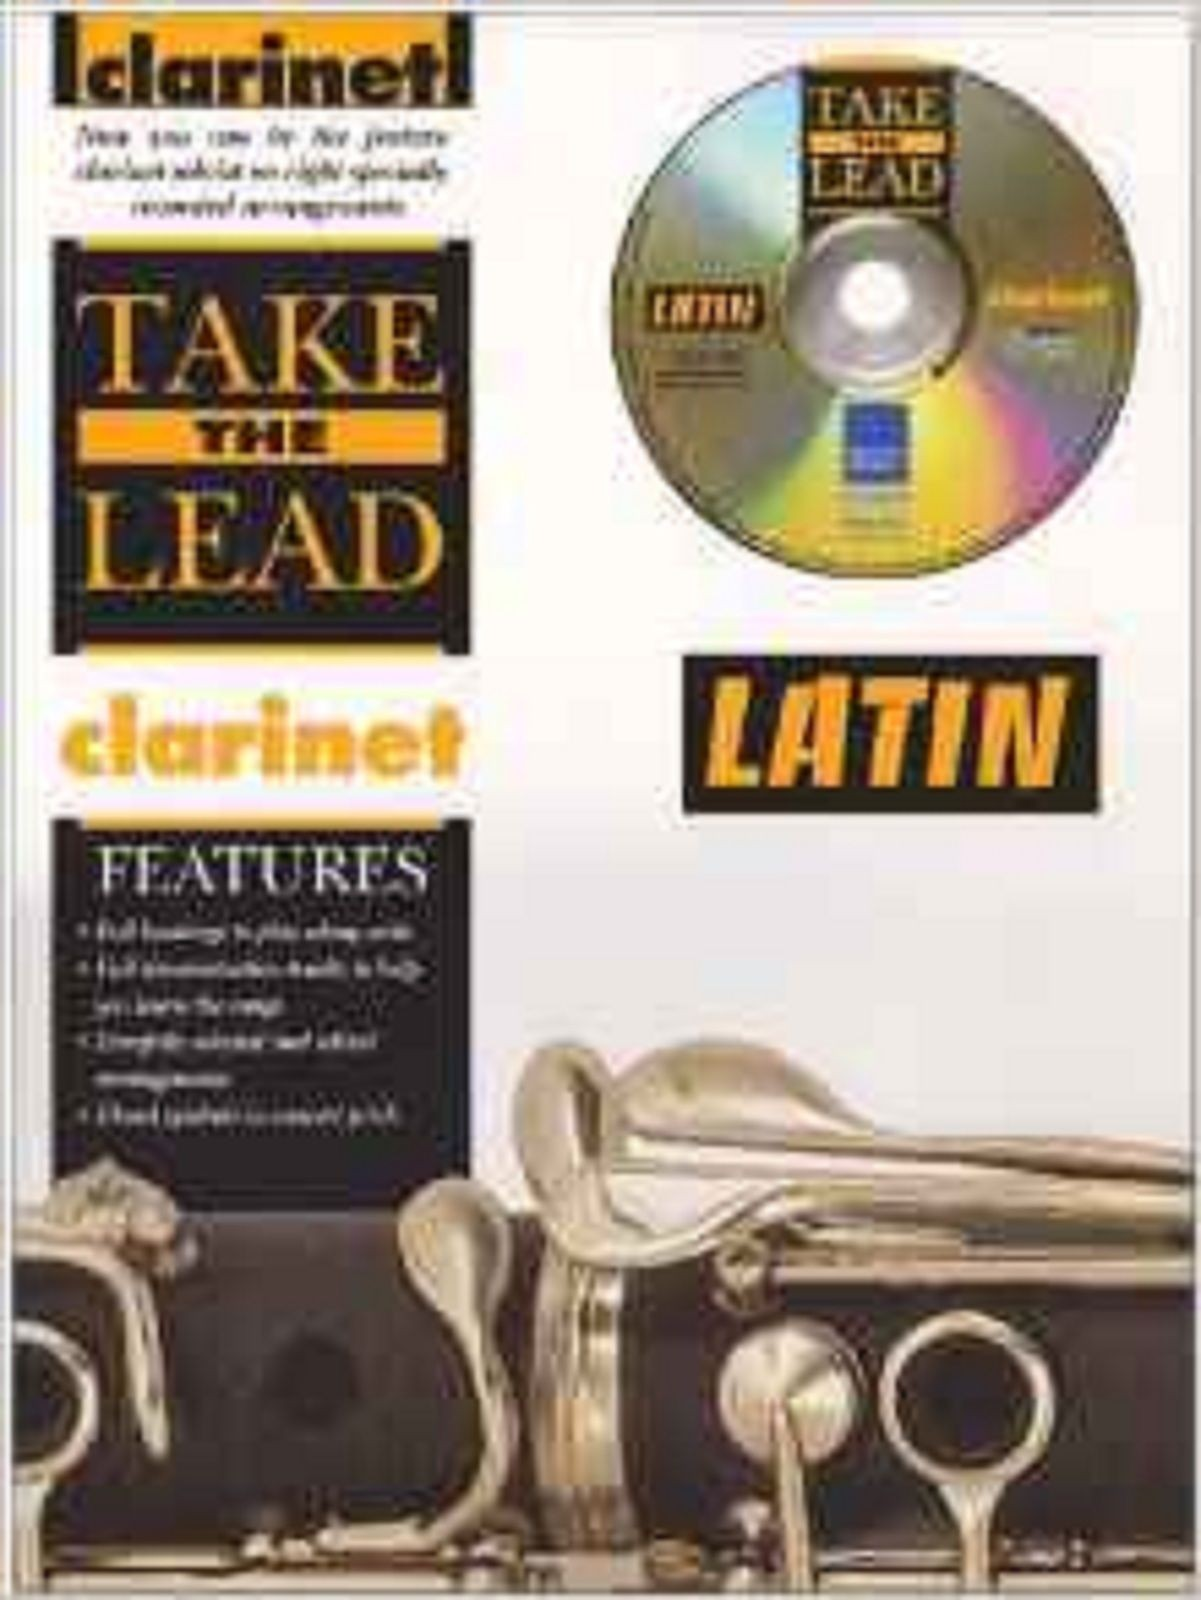 Take The Lead Clarinet Latin Solo Sheet Music Book CD Bailamos Soul Limbo S141